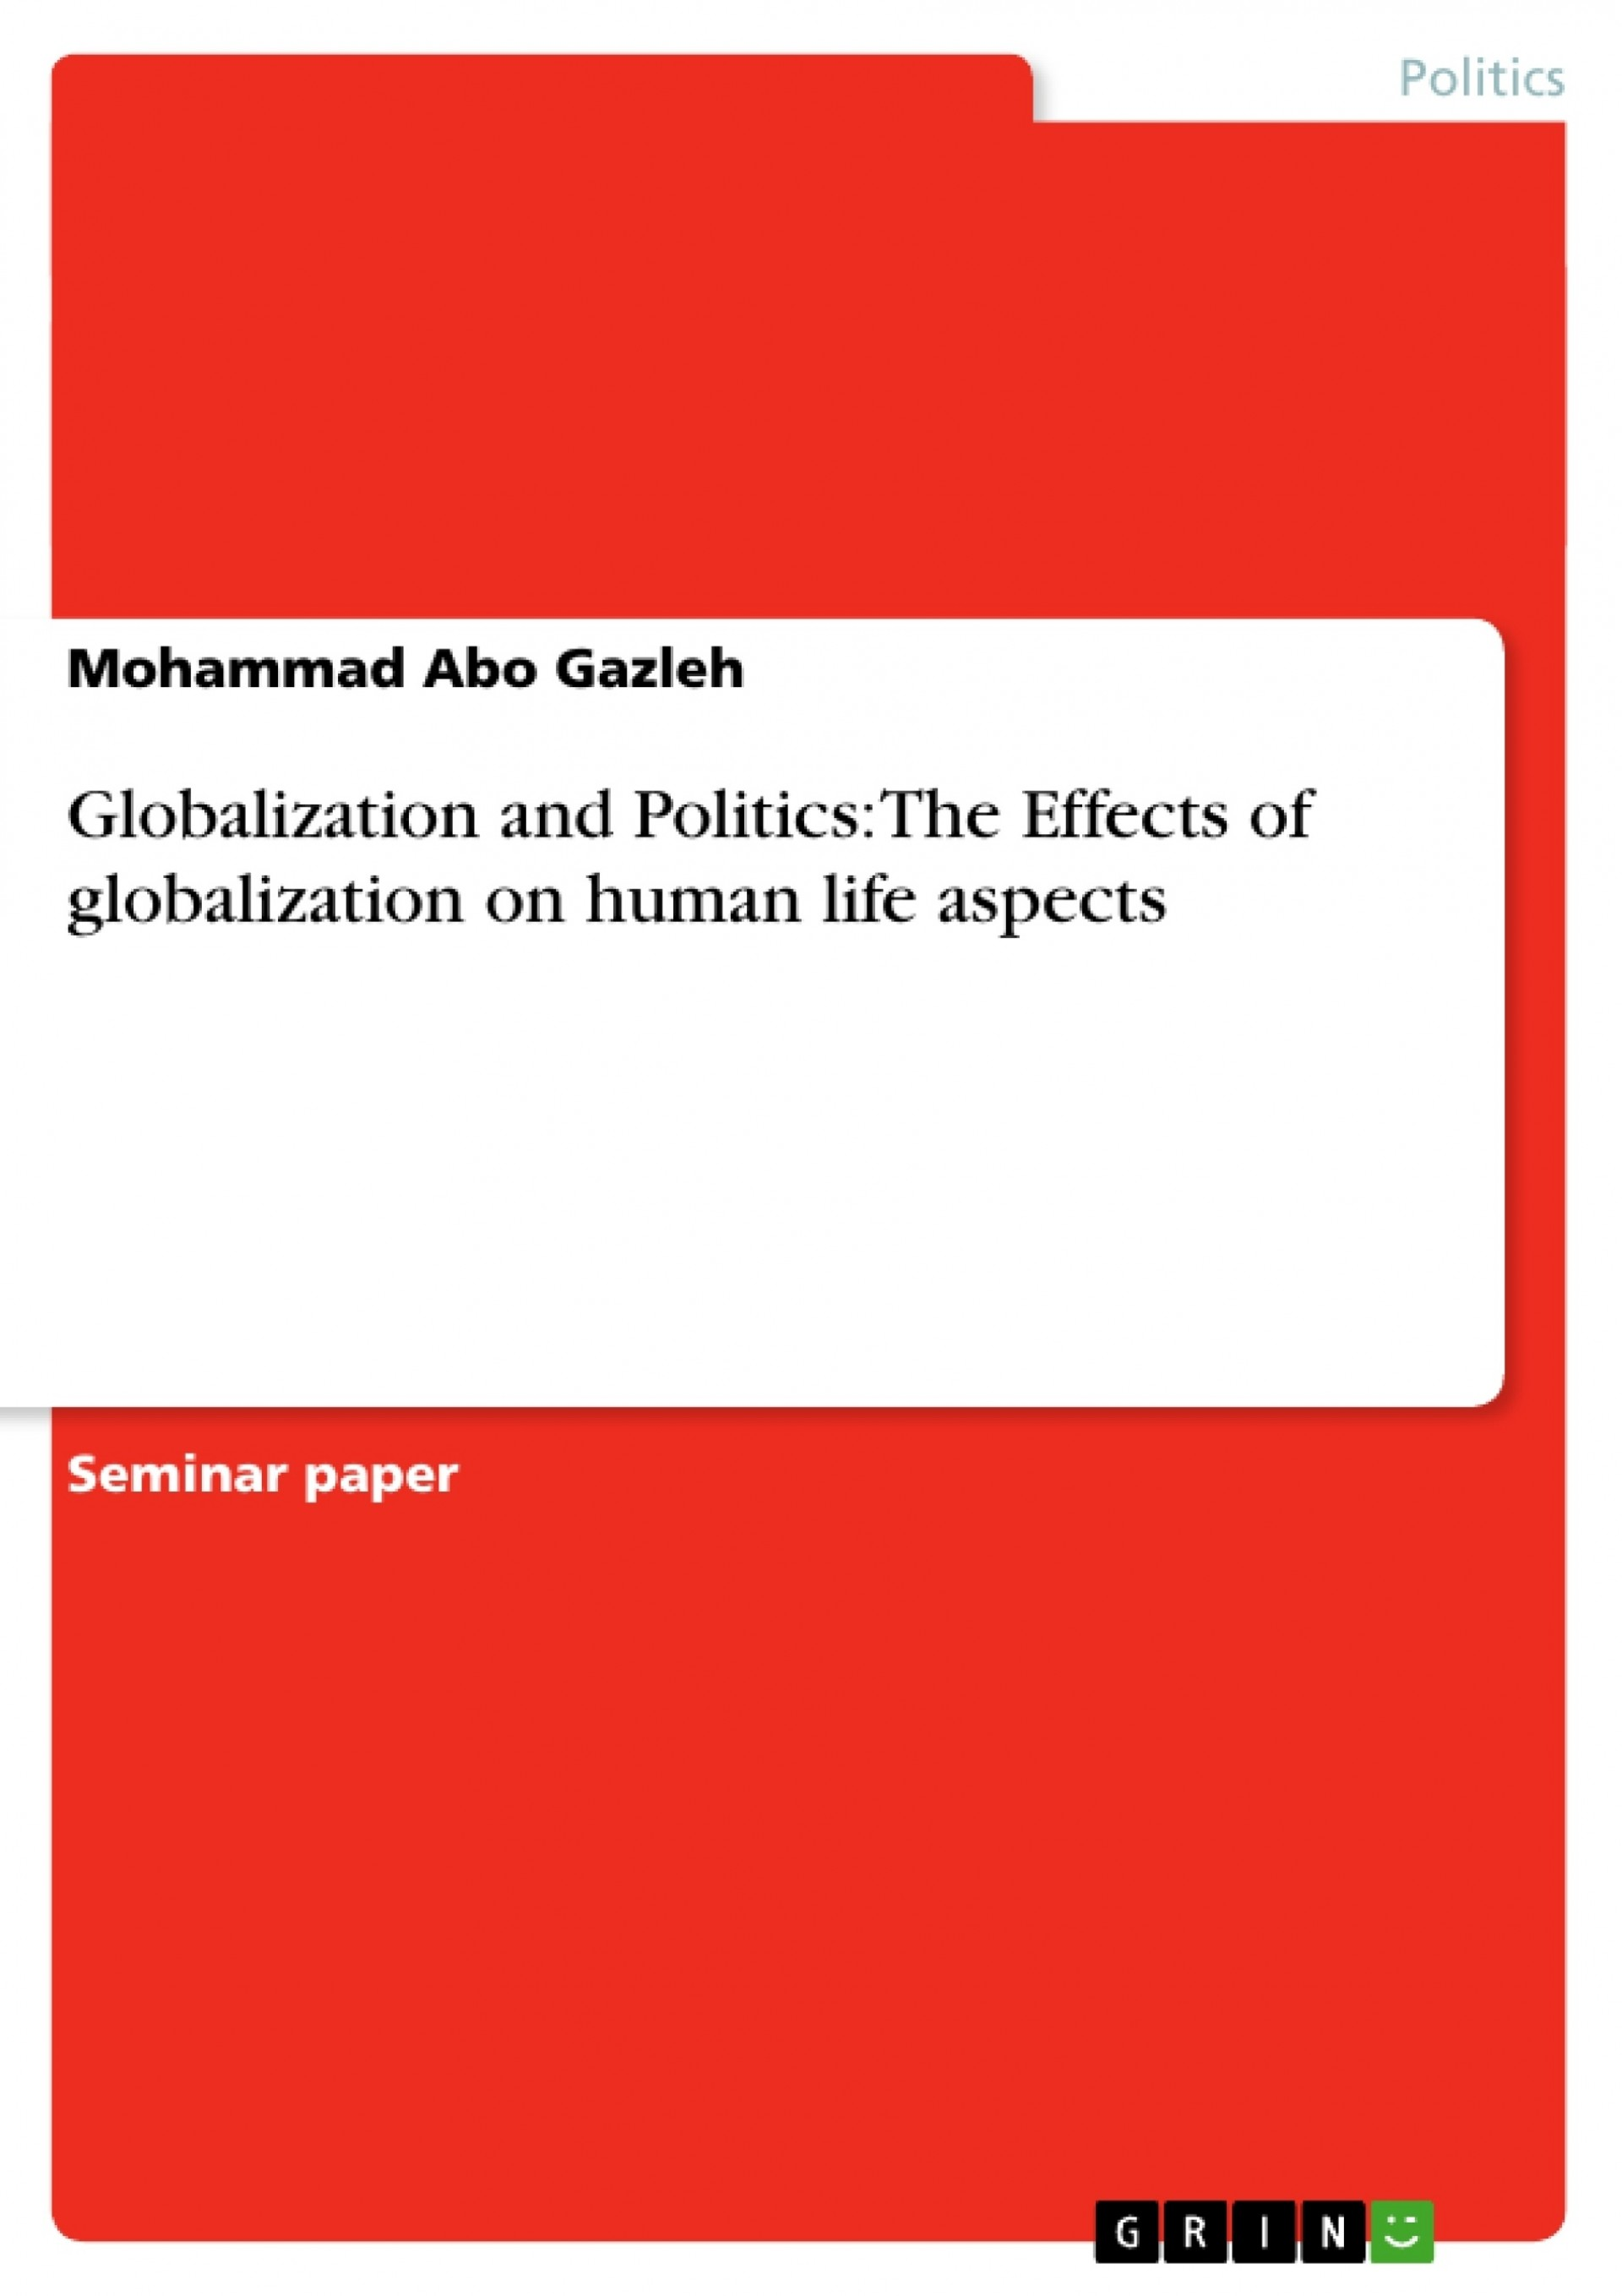 017 110500 0 Globalization Conclusion Essay Wonderful 1920